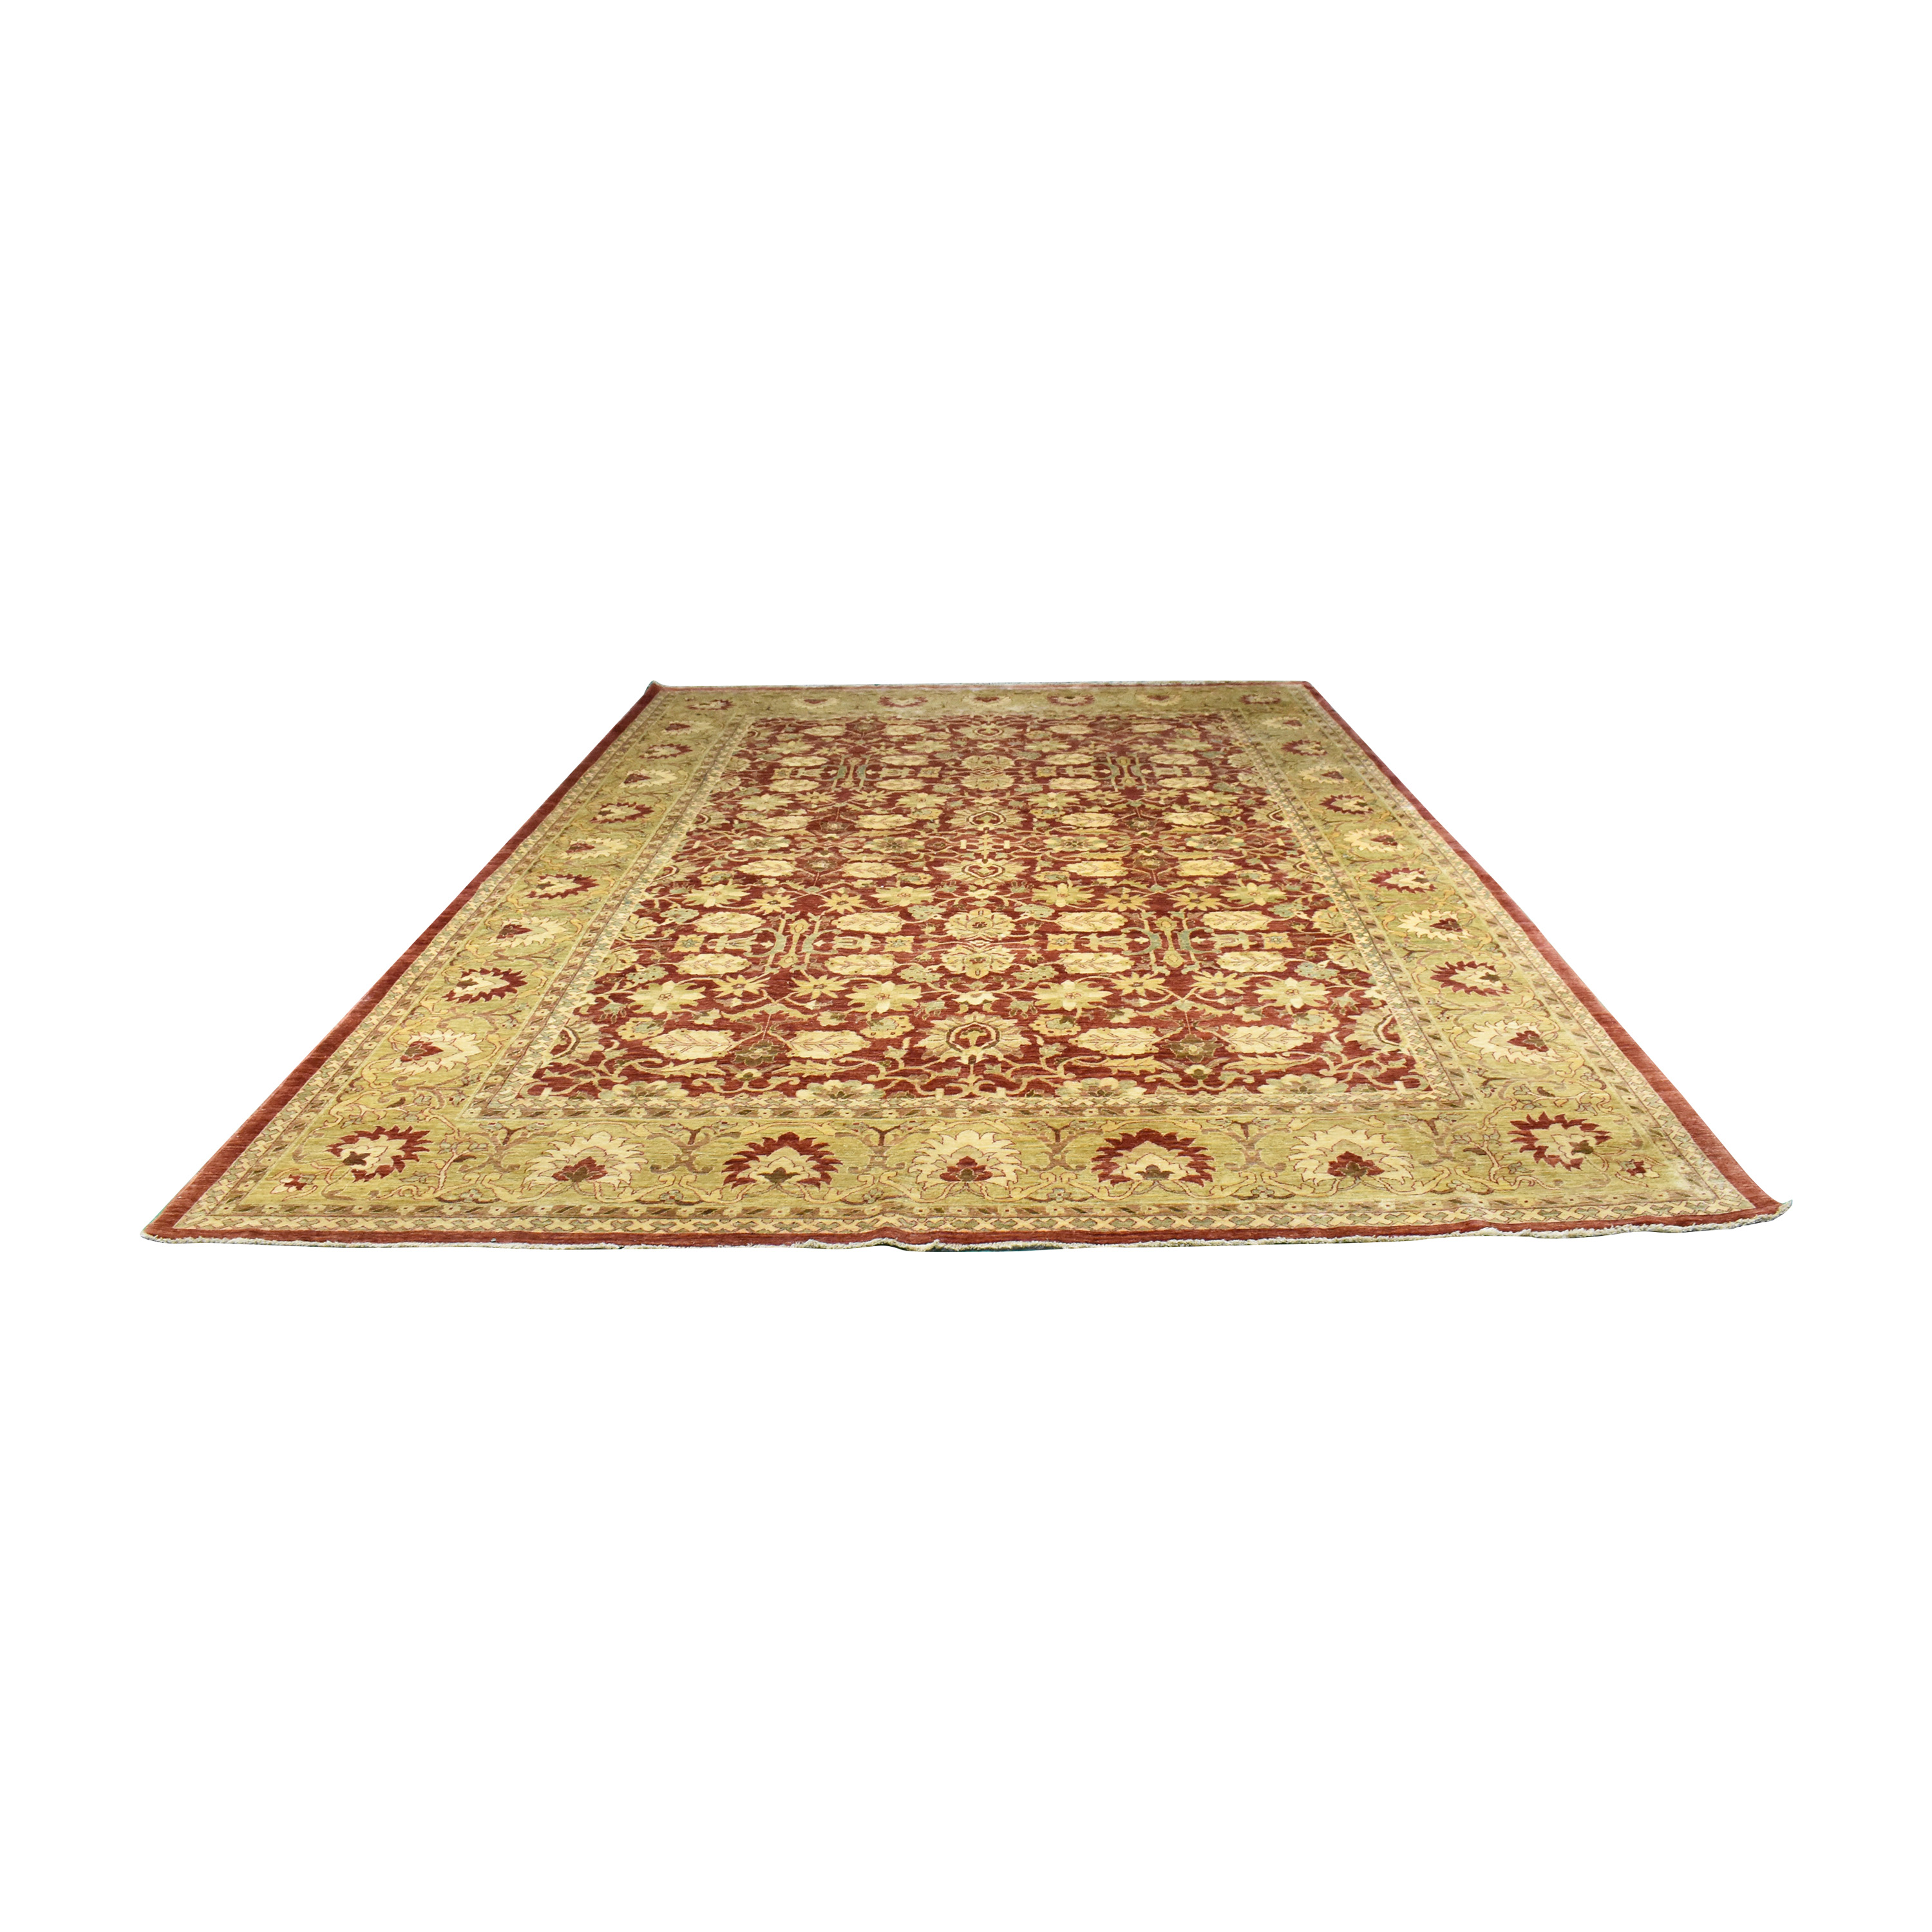 shop ABC Carpet & Home Persian-Style Area Rug ABC Carpet & Home Decor